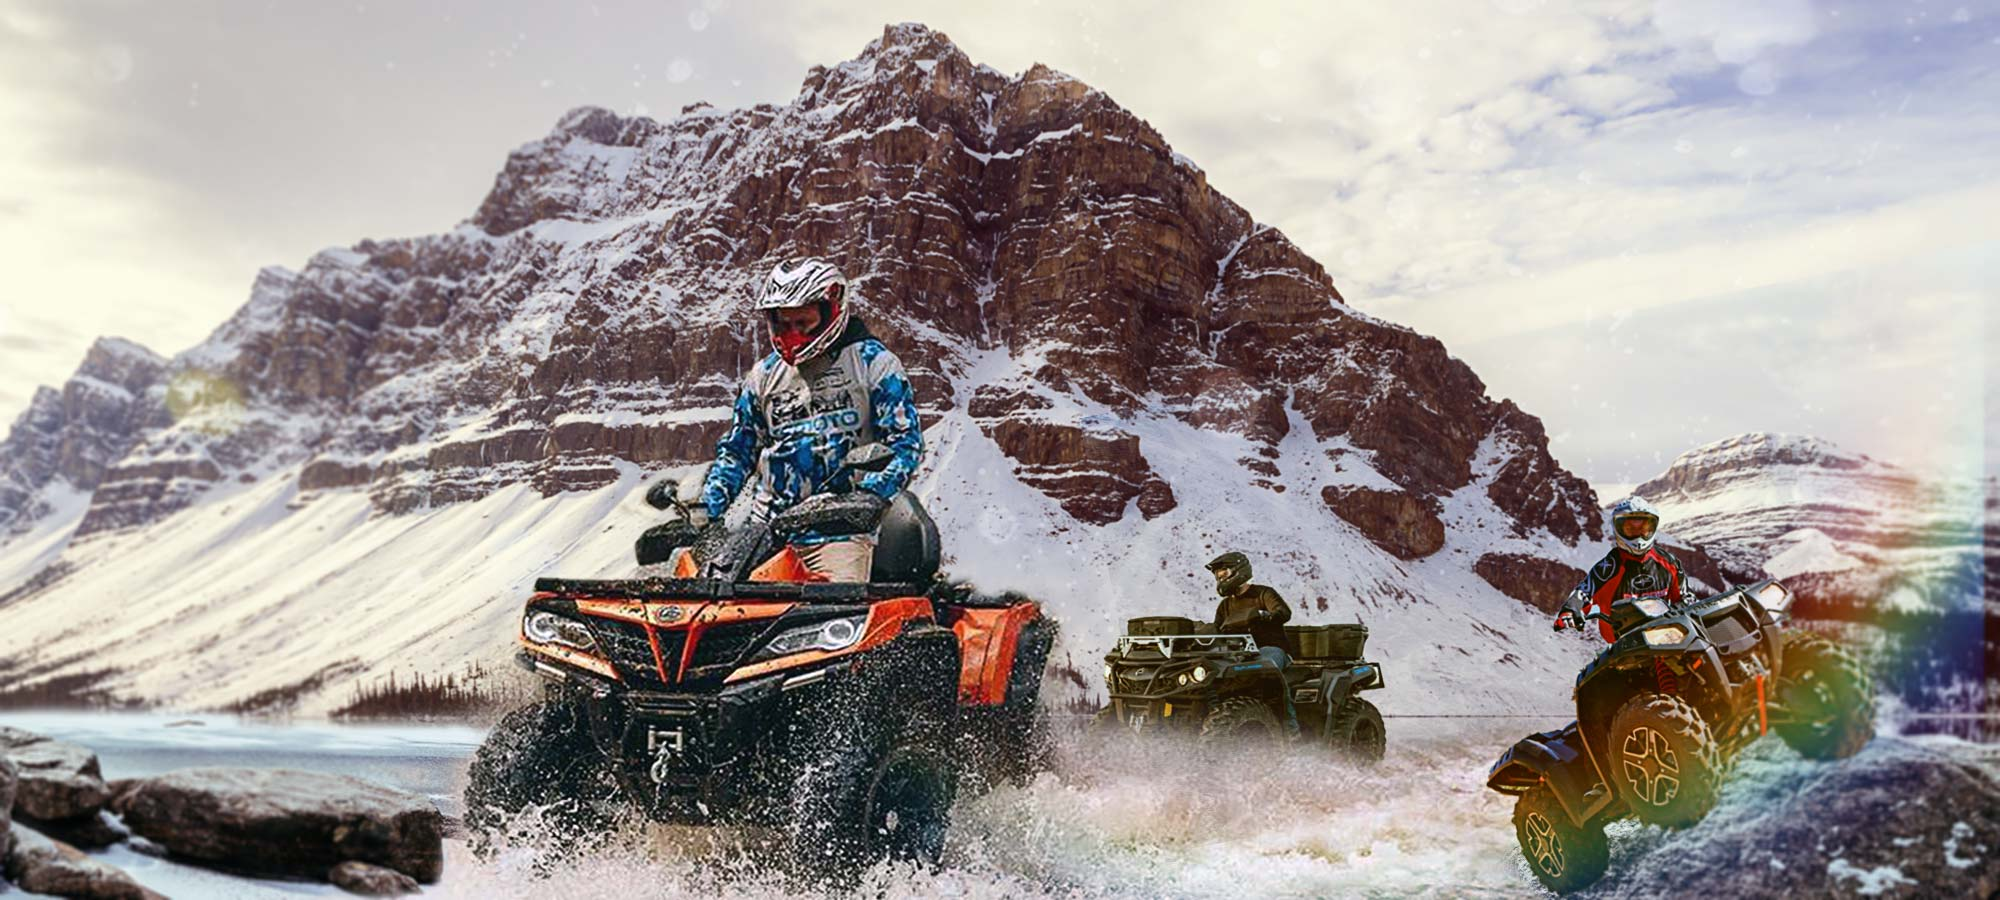 Banner ATV Can-am  Bombardier  1